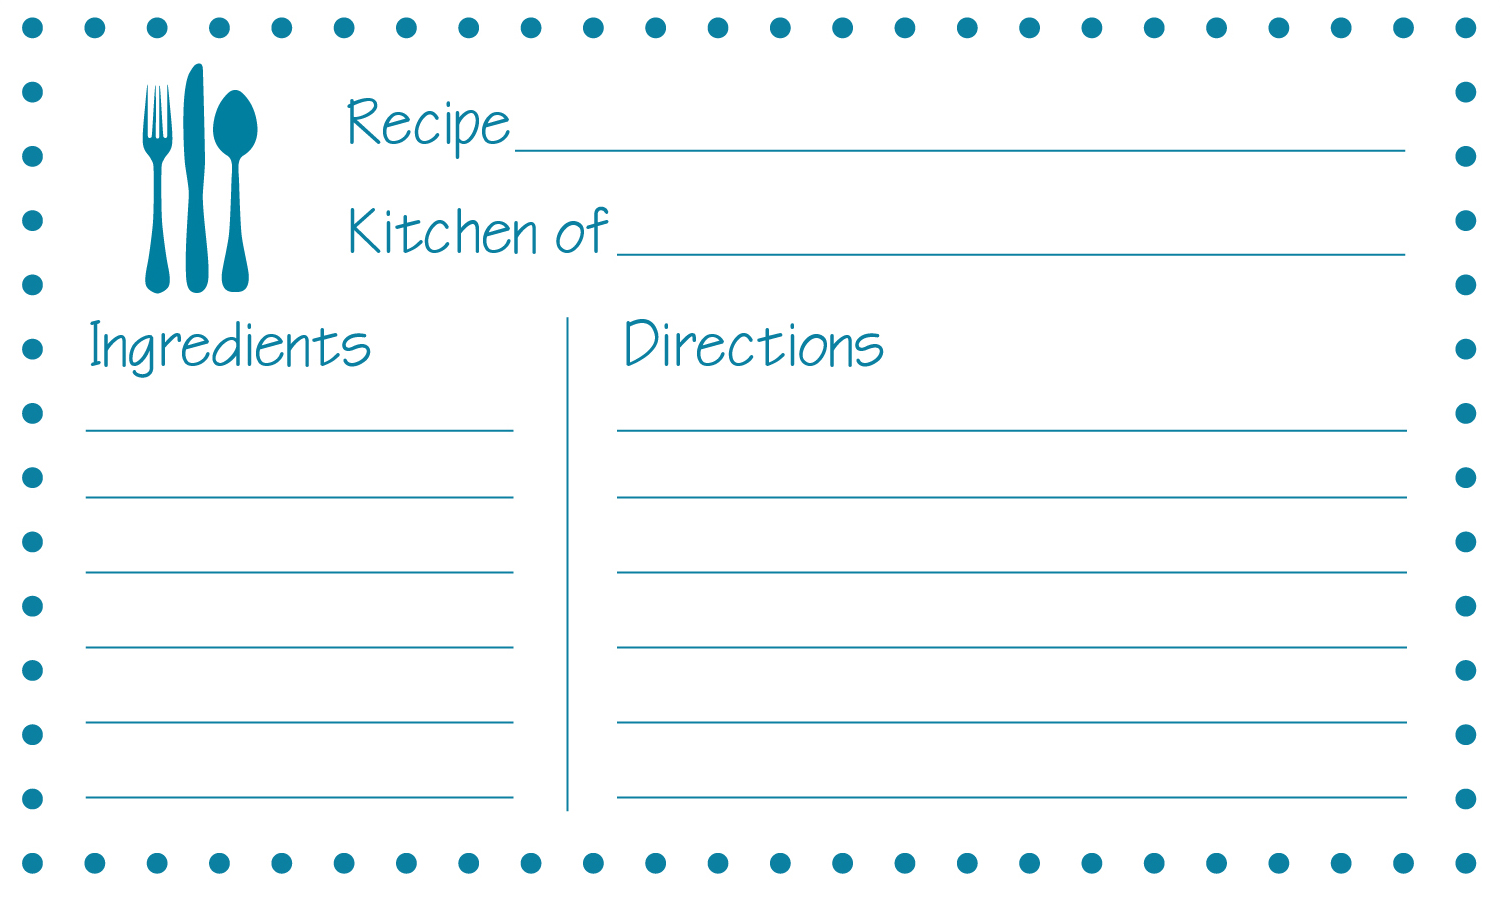 template for recipes in word - 8 best images of free printable 3x5 recipe cards